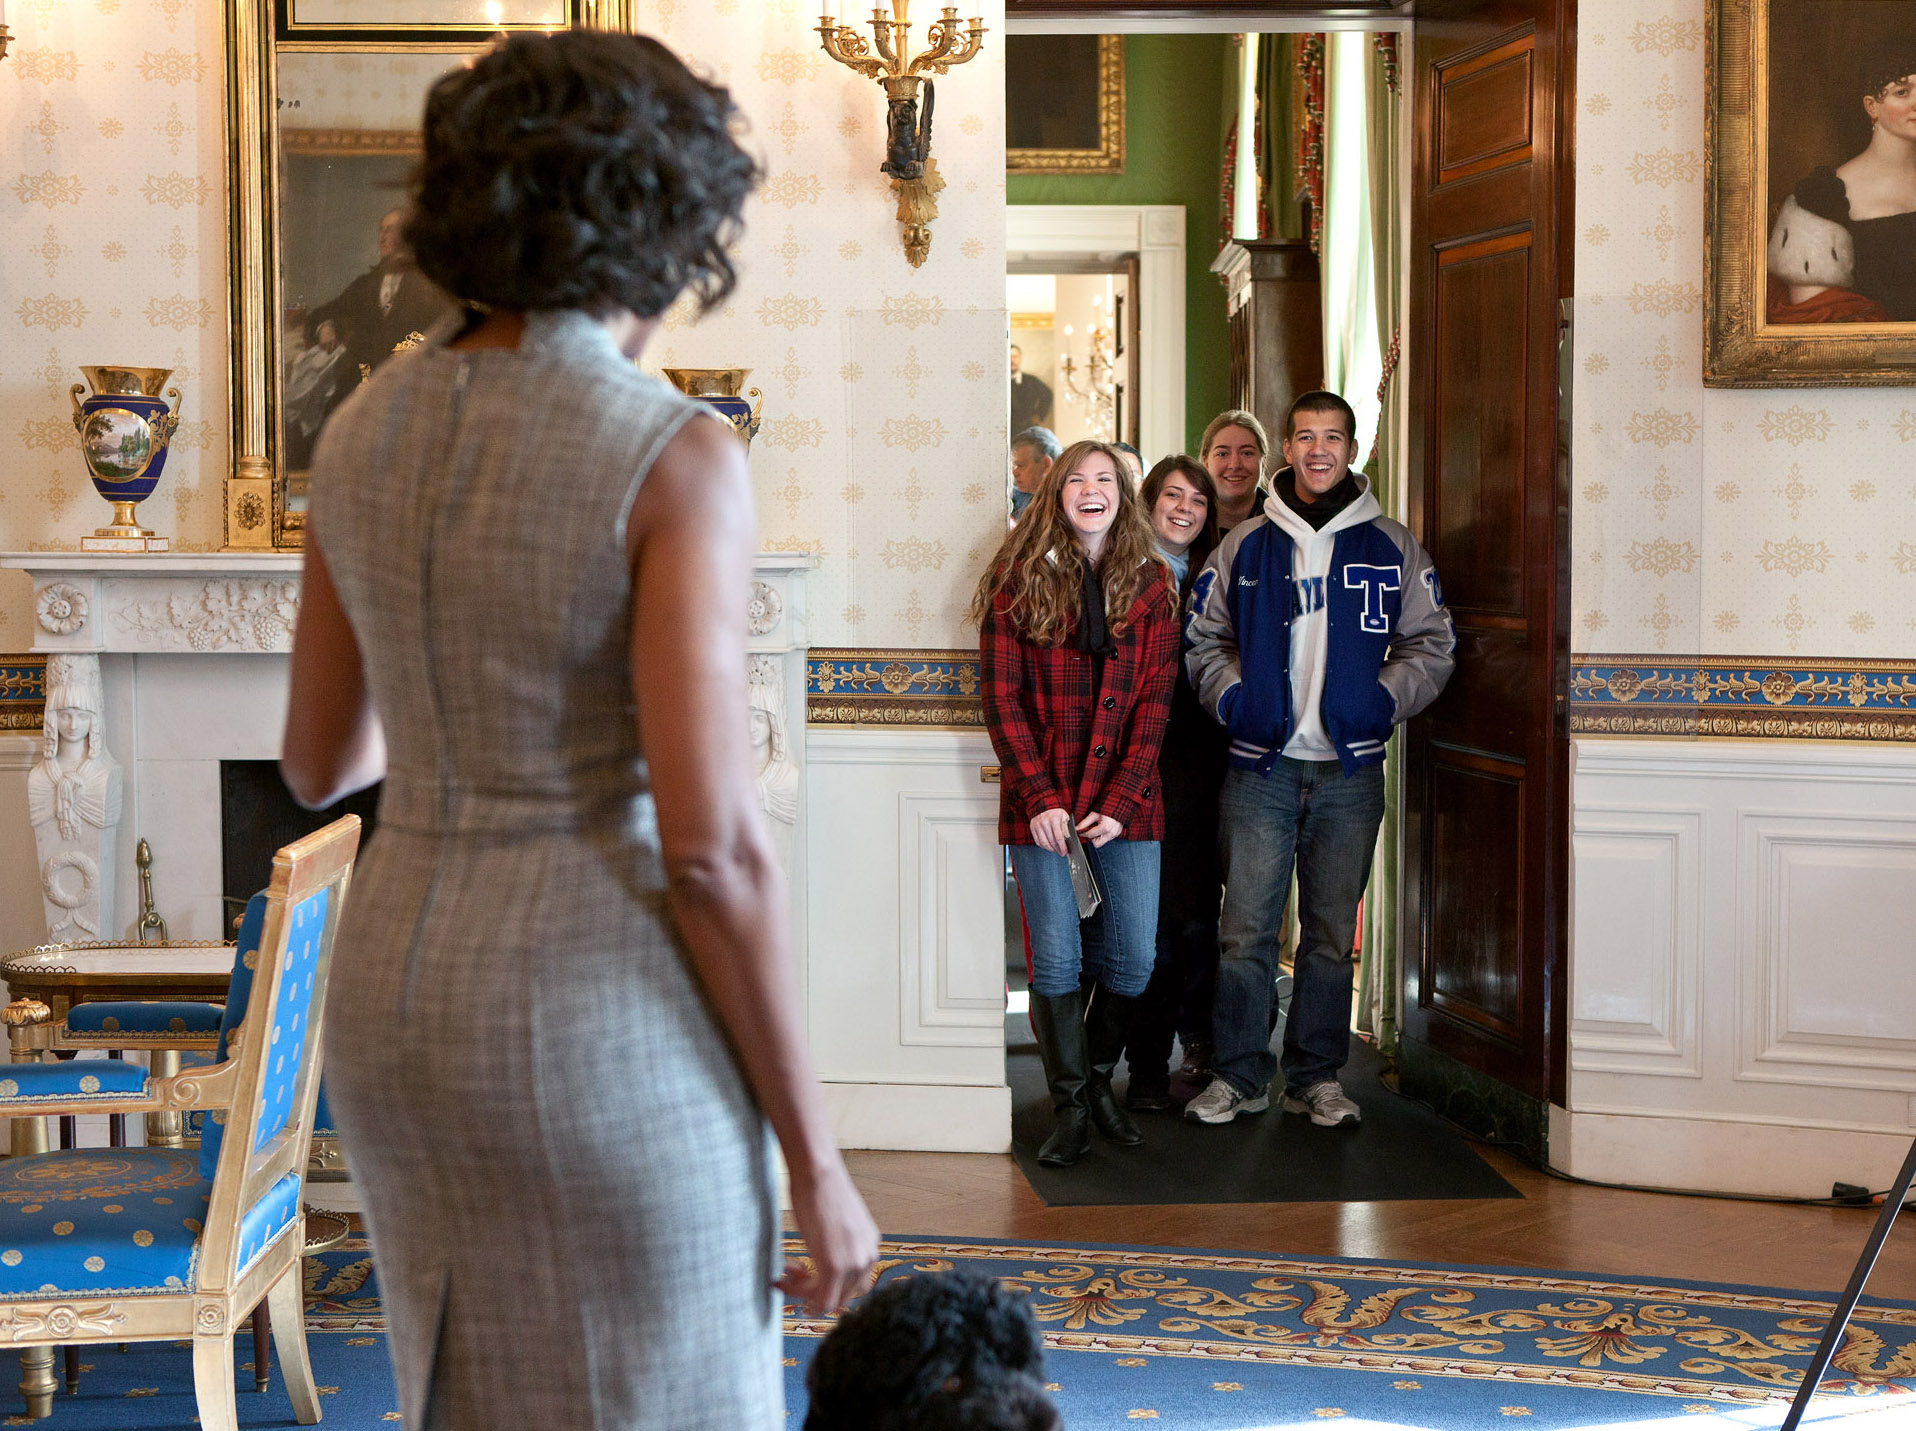 First Lady Michelle Obama Surprises White House Visitors